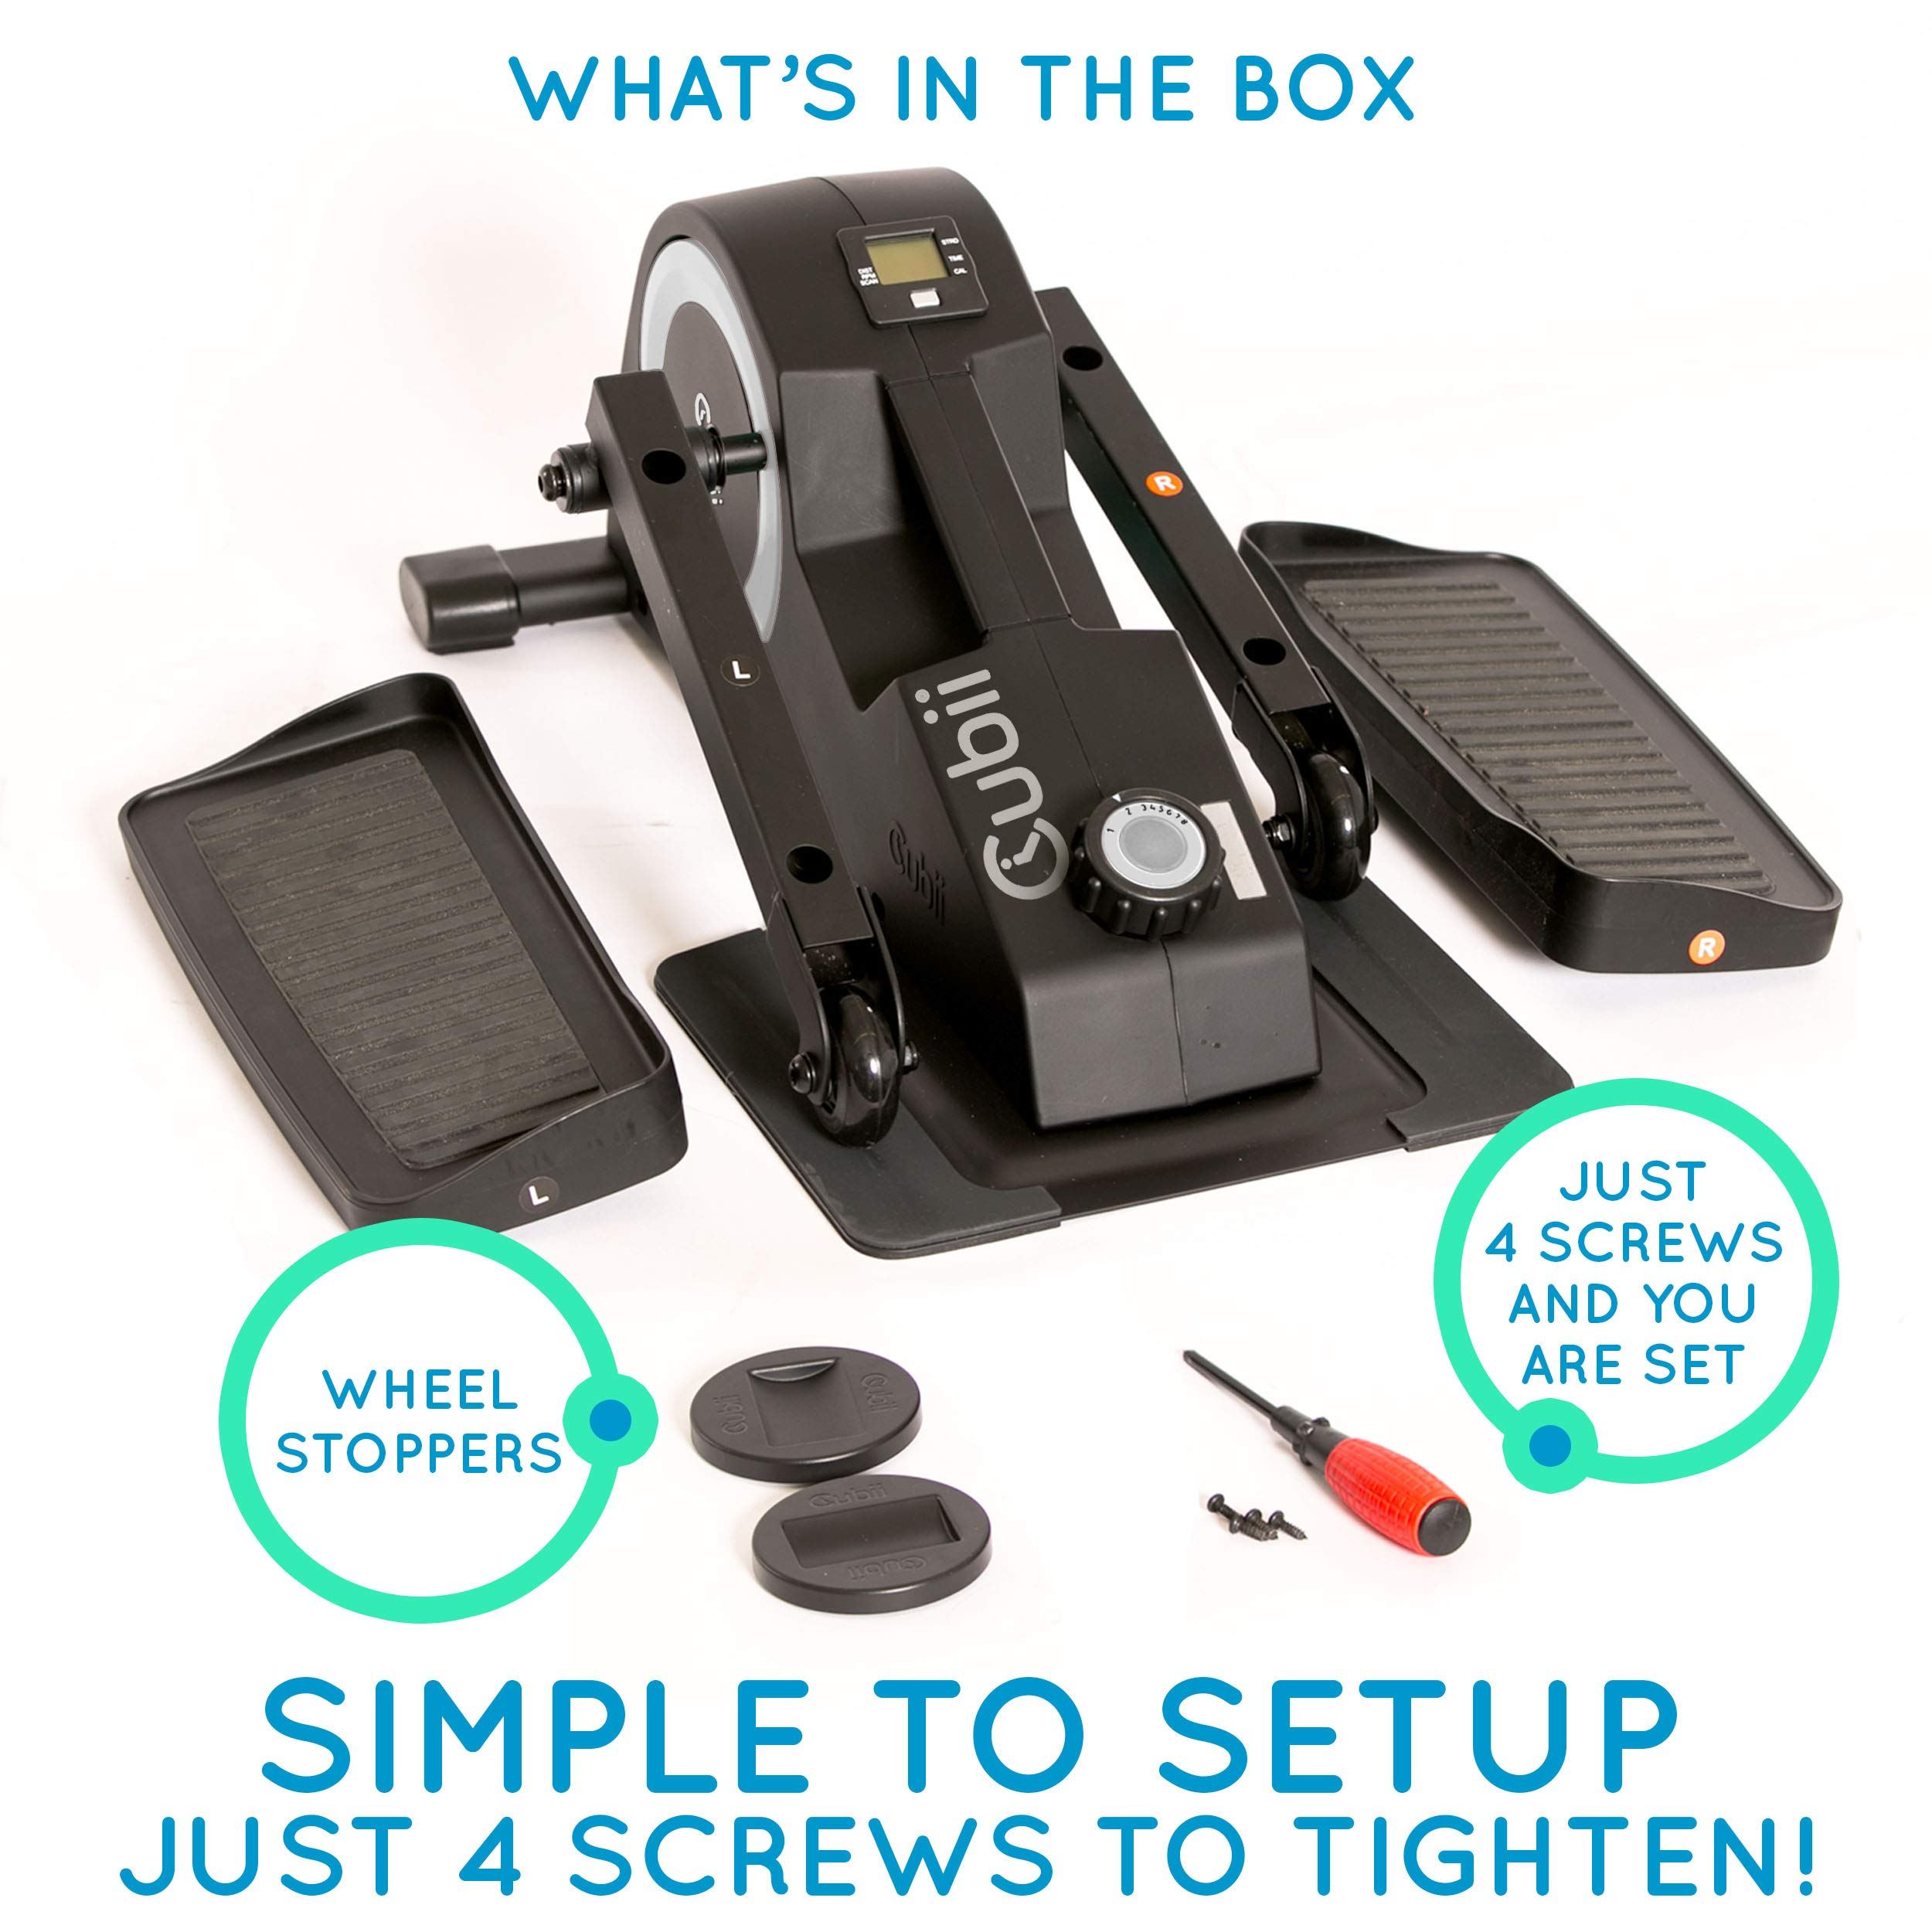 Cubii Jr: Desk Elliptical w/Built in Display Monitor, Easy Assembly, Quiet & Compact, Adjustable Resistance (Silver) by Cubii (Image #9)